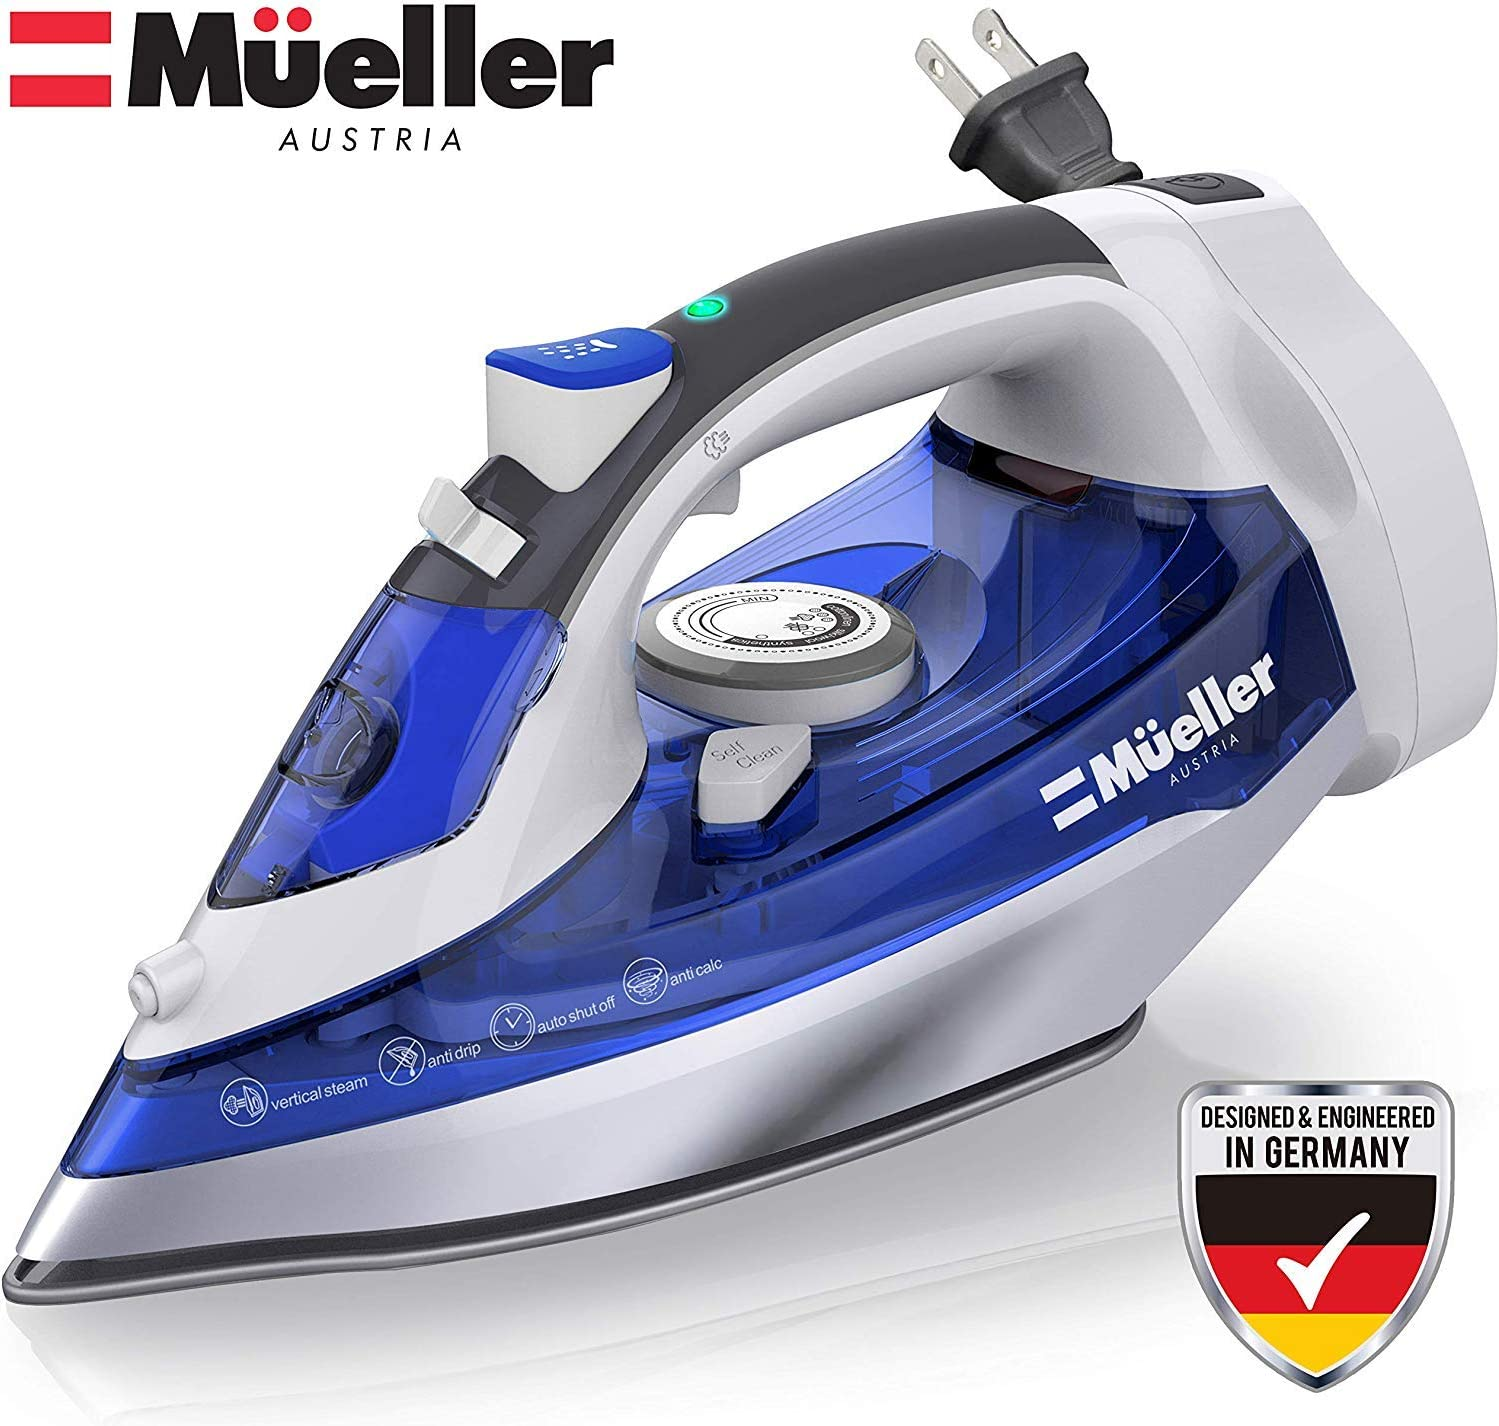 Mueller Steam Iron, Large Water Tank, Nonstick Stainless Steel Soleplate, 8 Ft Power Cord, 3 Way Auto Shut Off, Retractable Cord, Self Cleaning Function Image